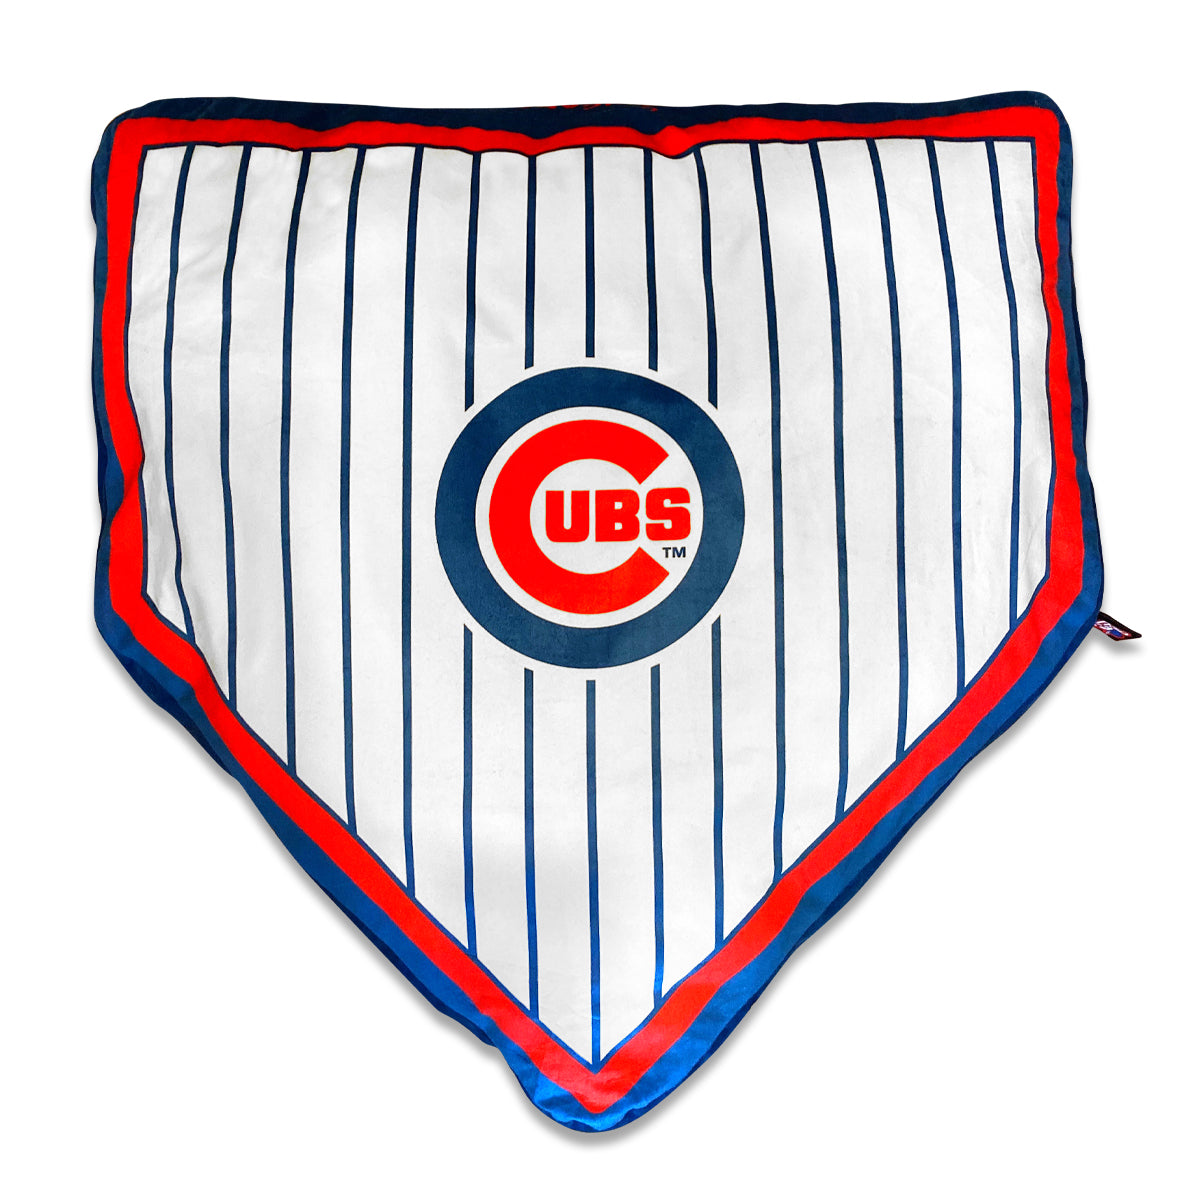 Chicago Cubs Home Plate Bed by Nap Cap